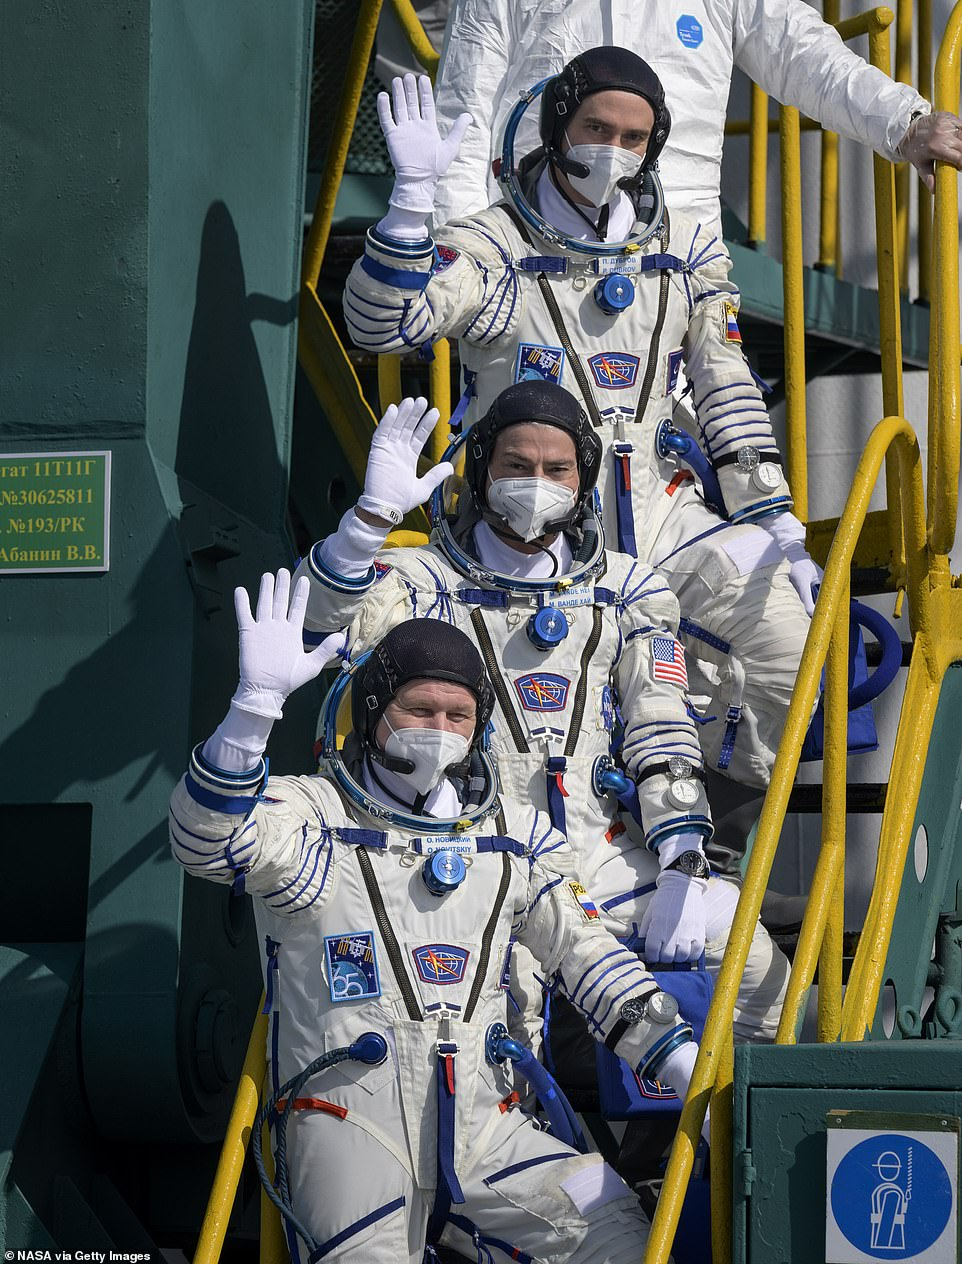 Expedition 65 Russian cosmonaut Oleg Novitskiy, NASA astronaut Mark Vande Hei and Russian cosmonaut Pyotr Dubrov wave farewell prior to boarding the Soyuz MS-18 spacecraft for launch at the Baikonur Cosmodrome on April 9 in Kazakhstan. The Soyuz MS-18 spacecraft will send the trio on a mission to the ISS